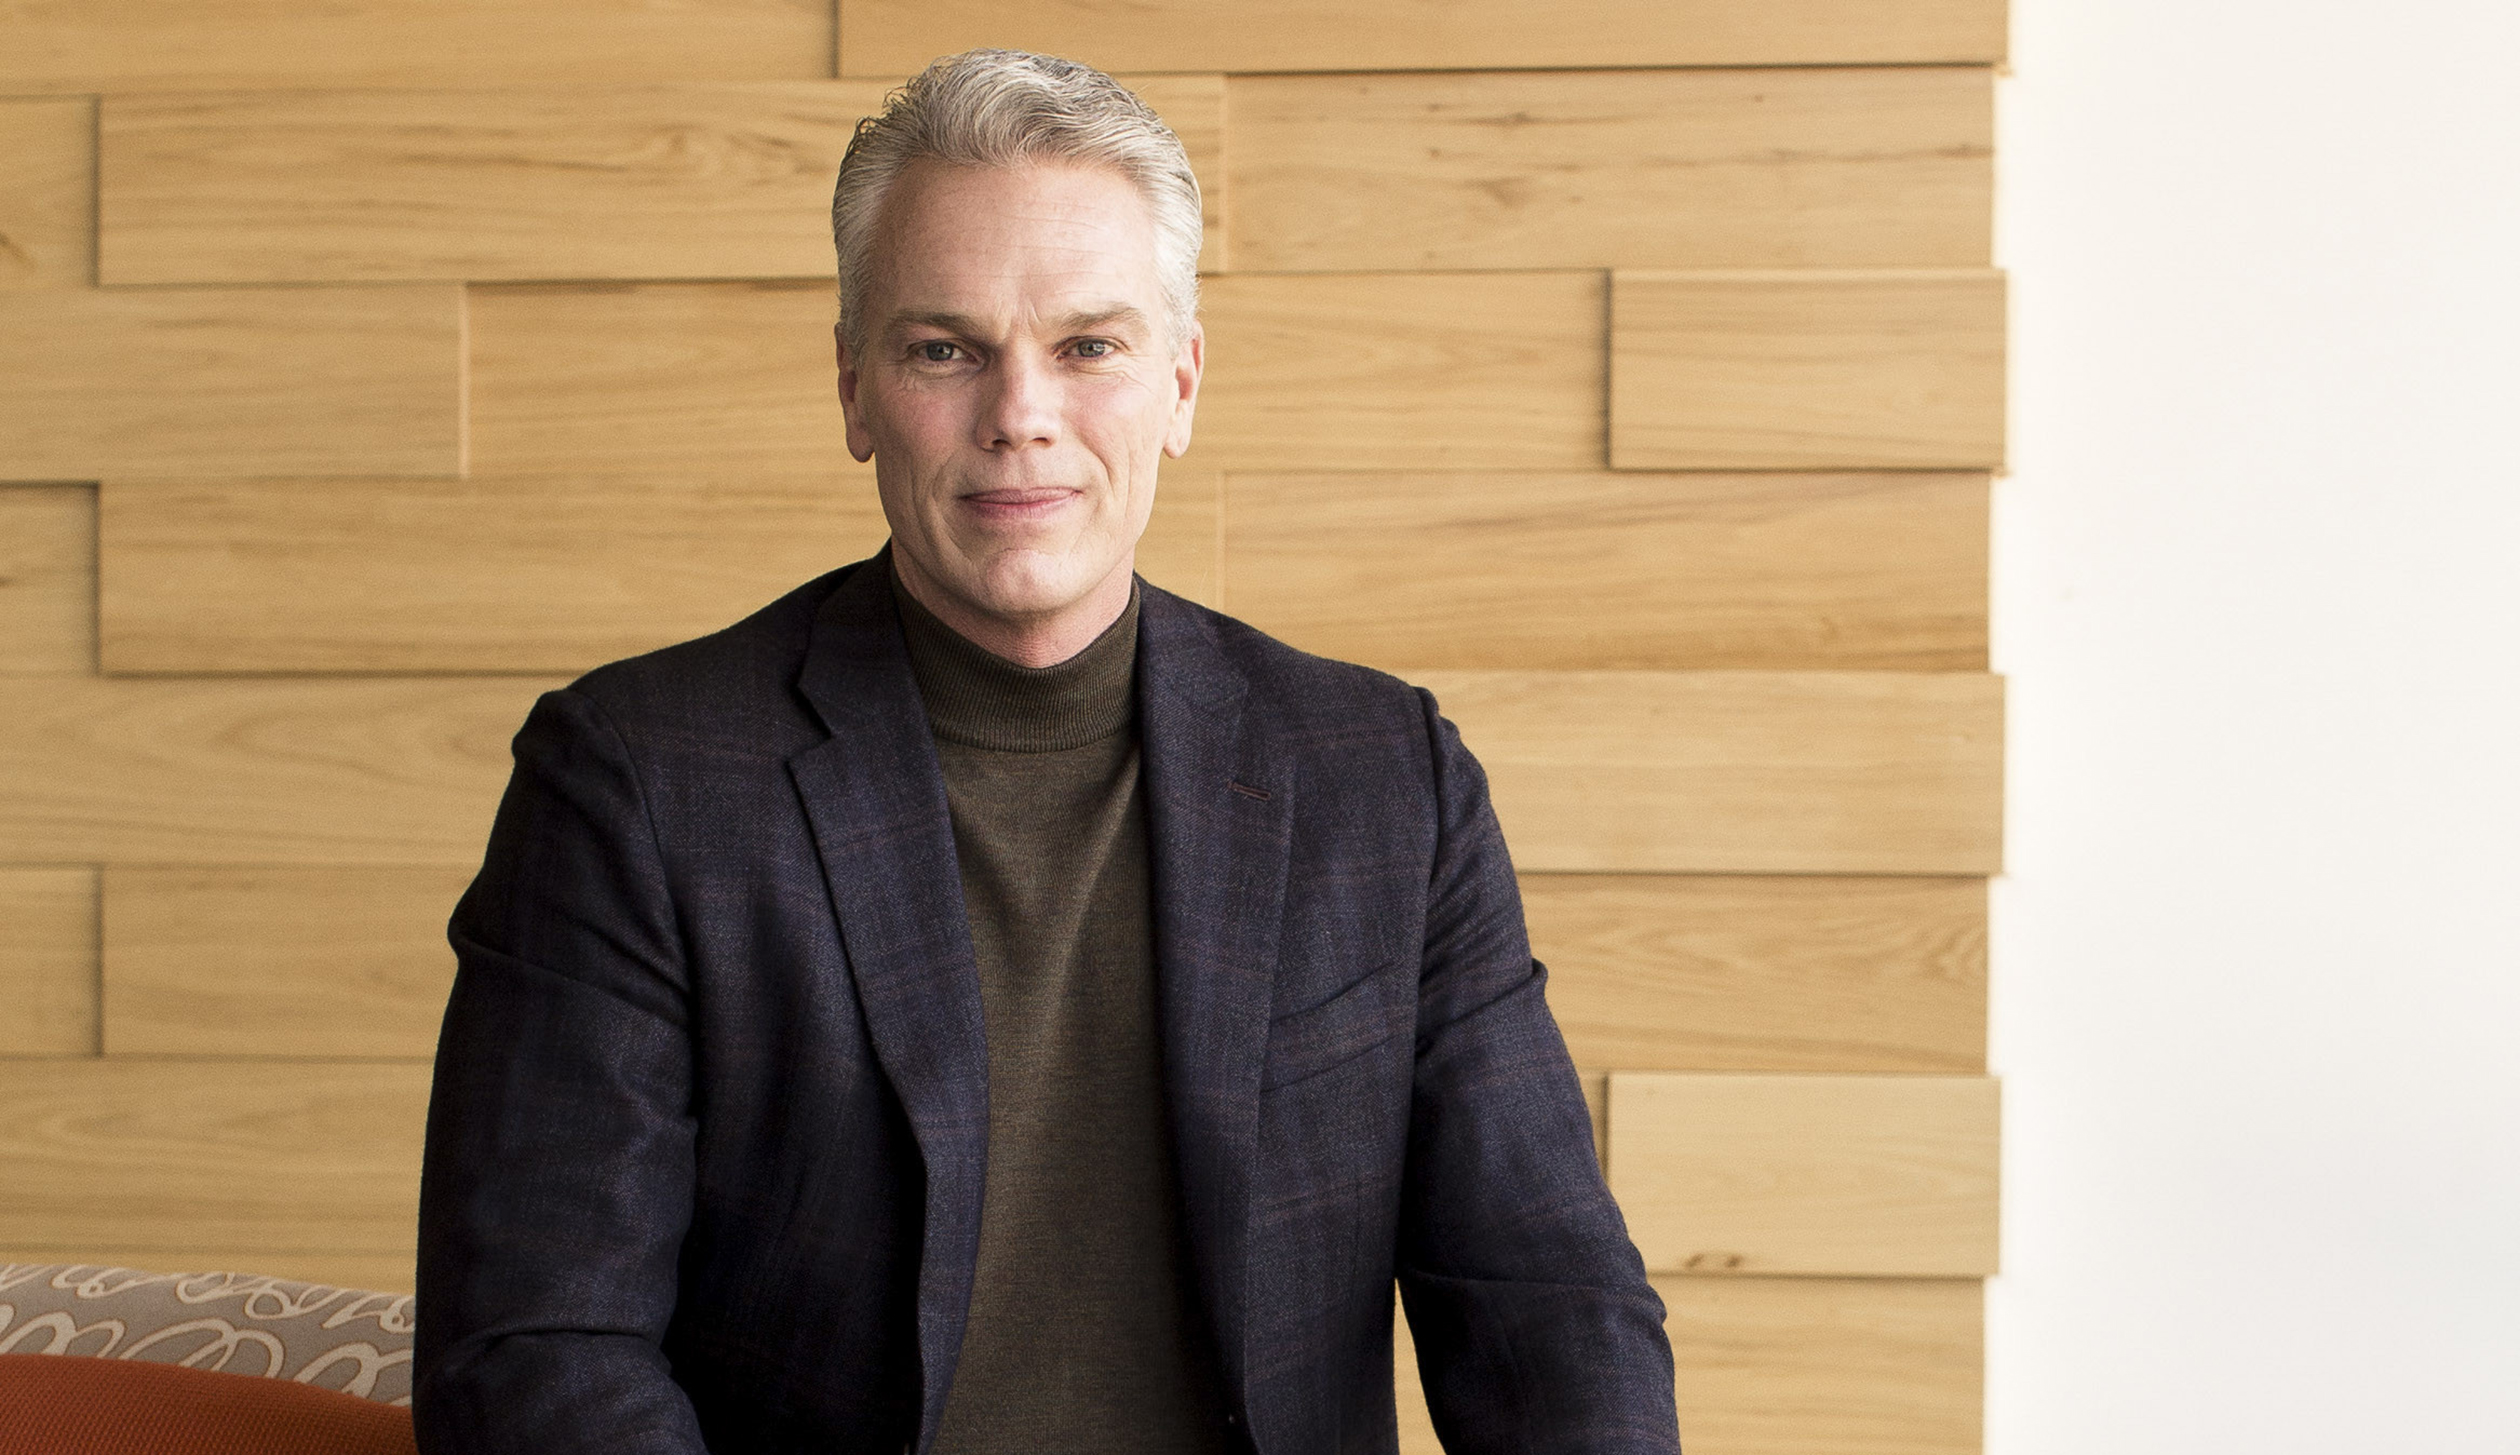 Brad Smith, chief executive of Intuit, at the company headquarters in Mountain View, Calif.